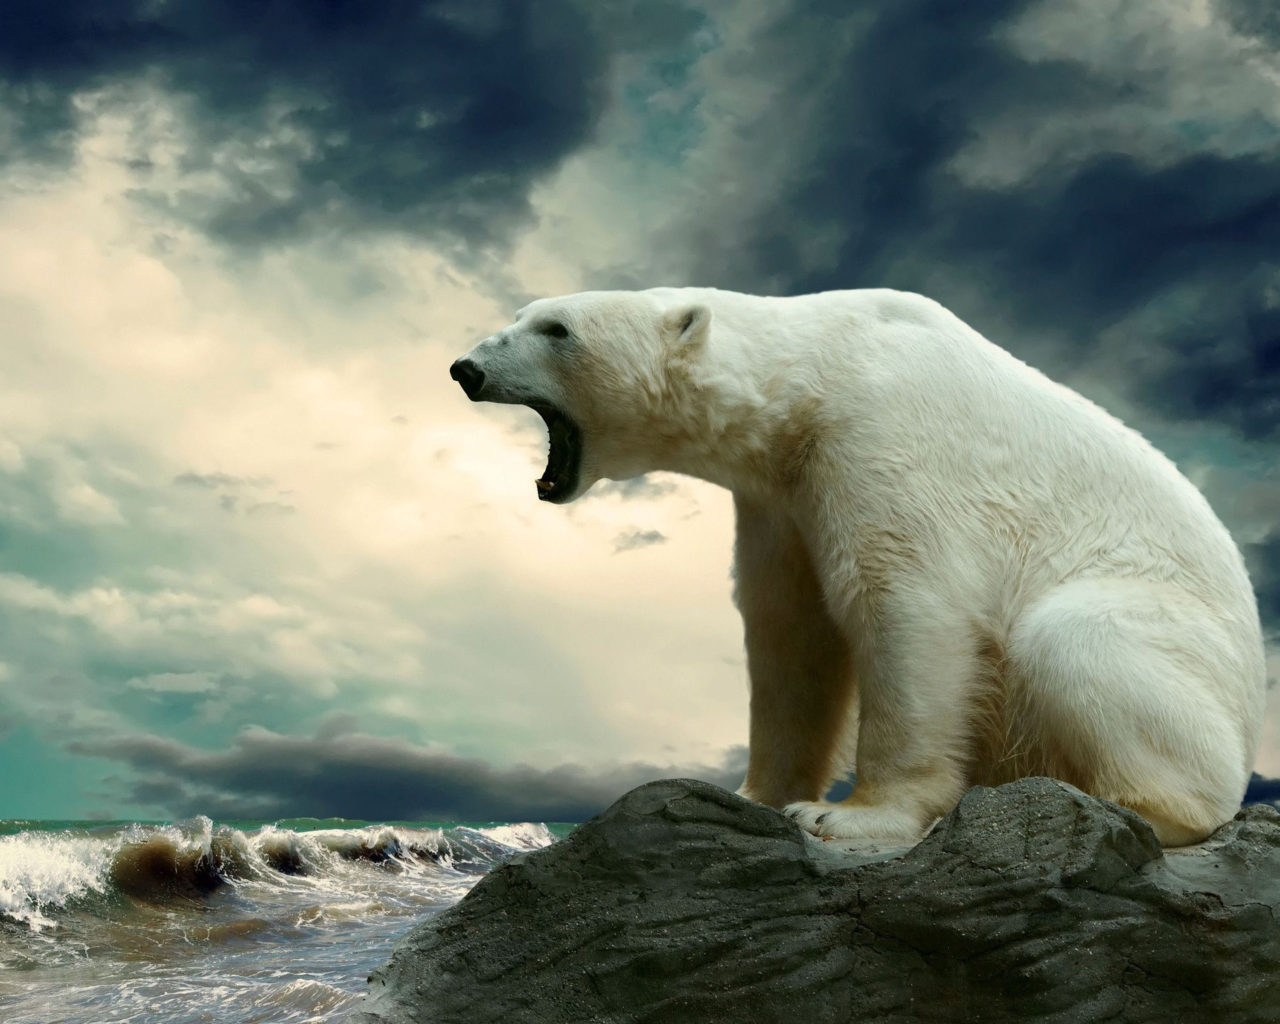 Fire And Water Hd Wallpapers Polar Bear Sea Ice Snow Dark Clouds Open Mouth Hd